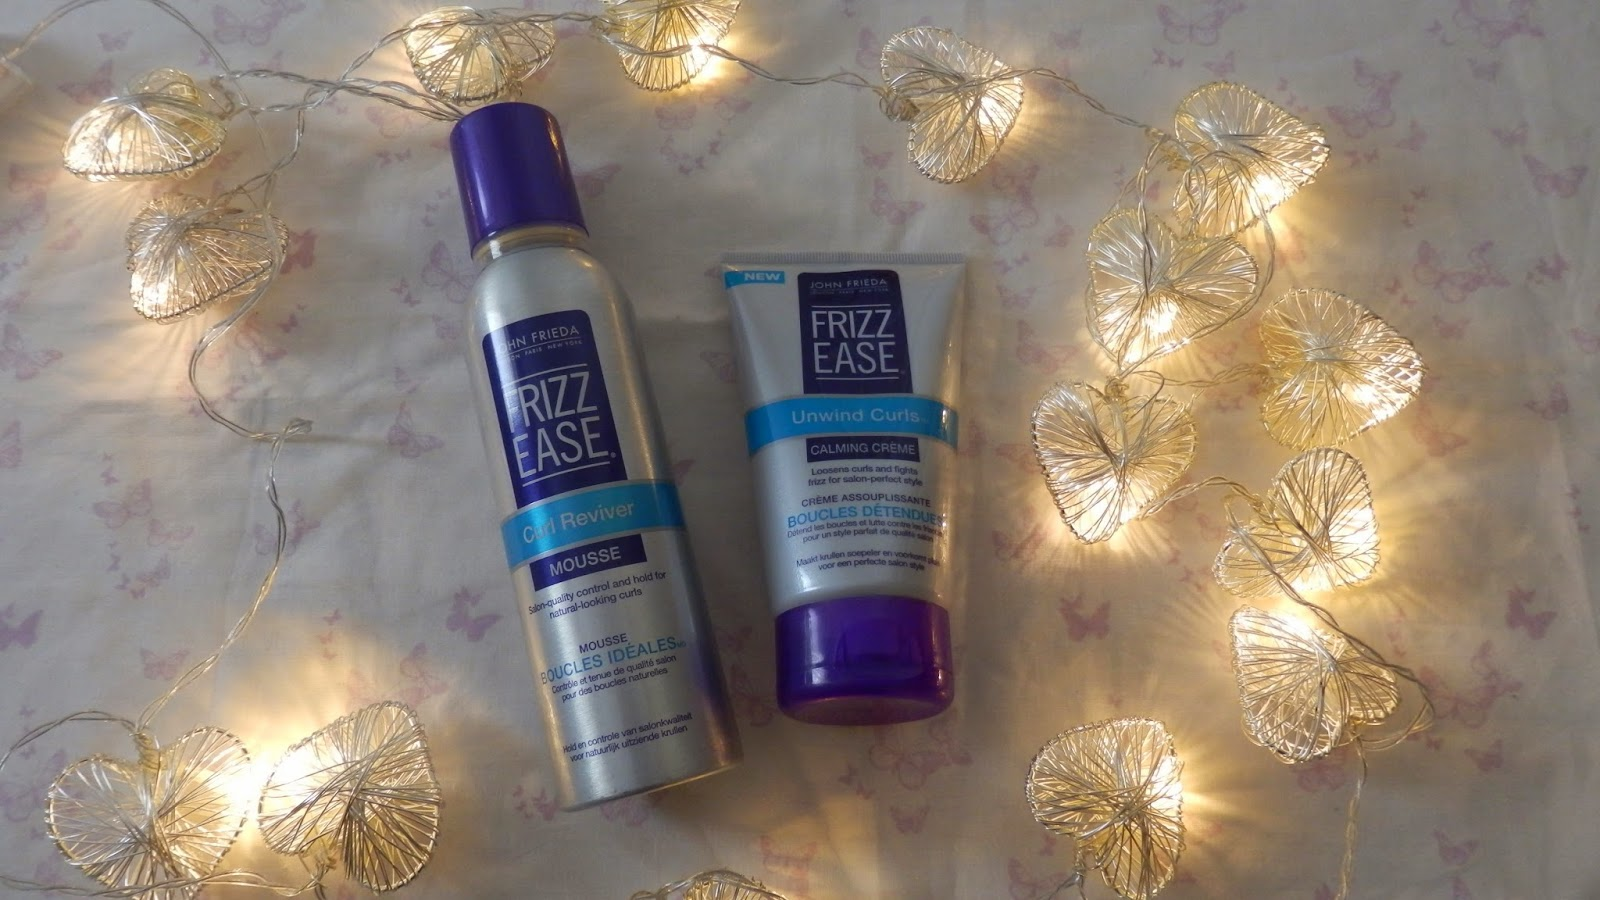 John Frieda Frizz Ease Range Curl Reviver Mousse and Unwind Curls Calming Creme